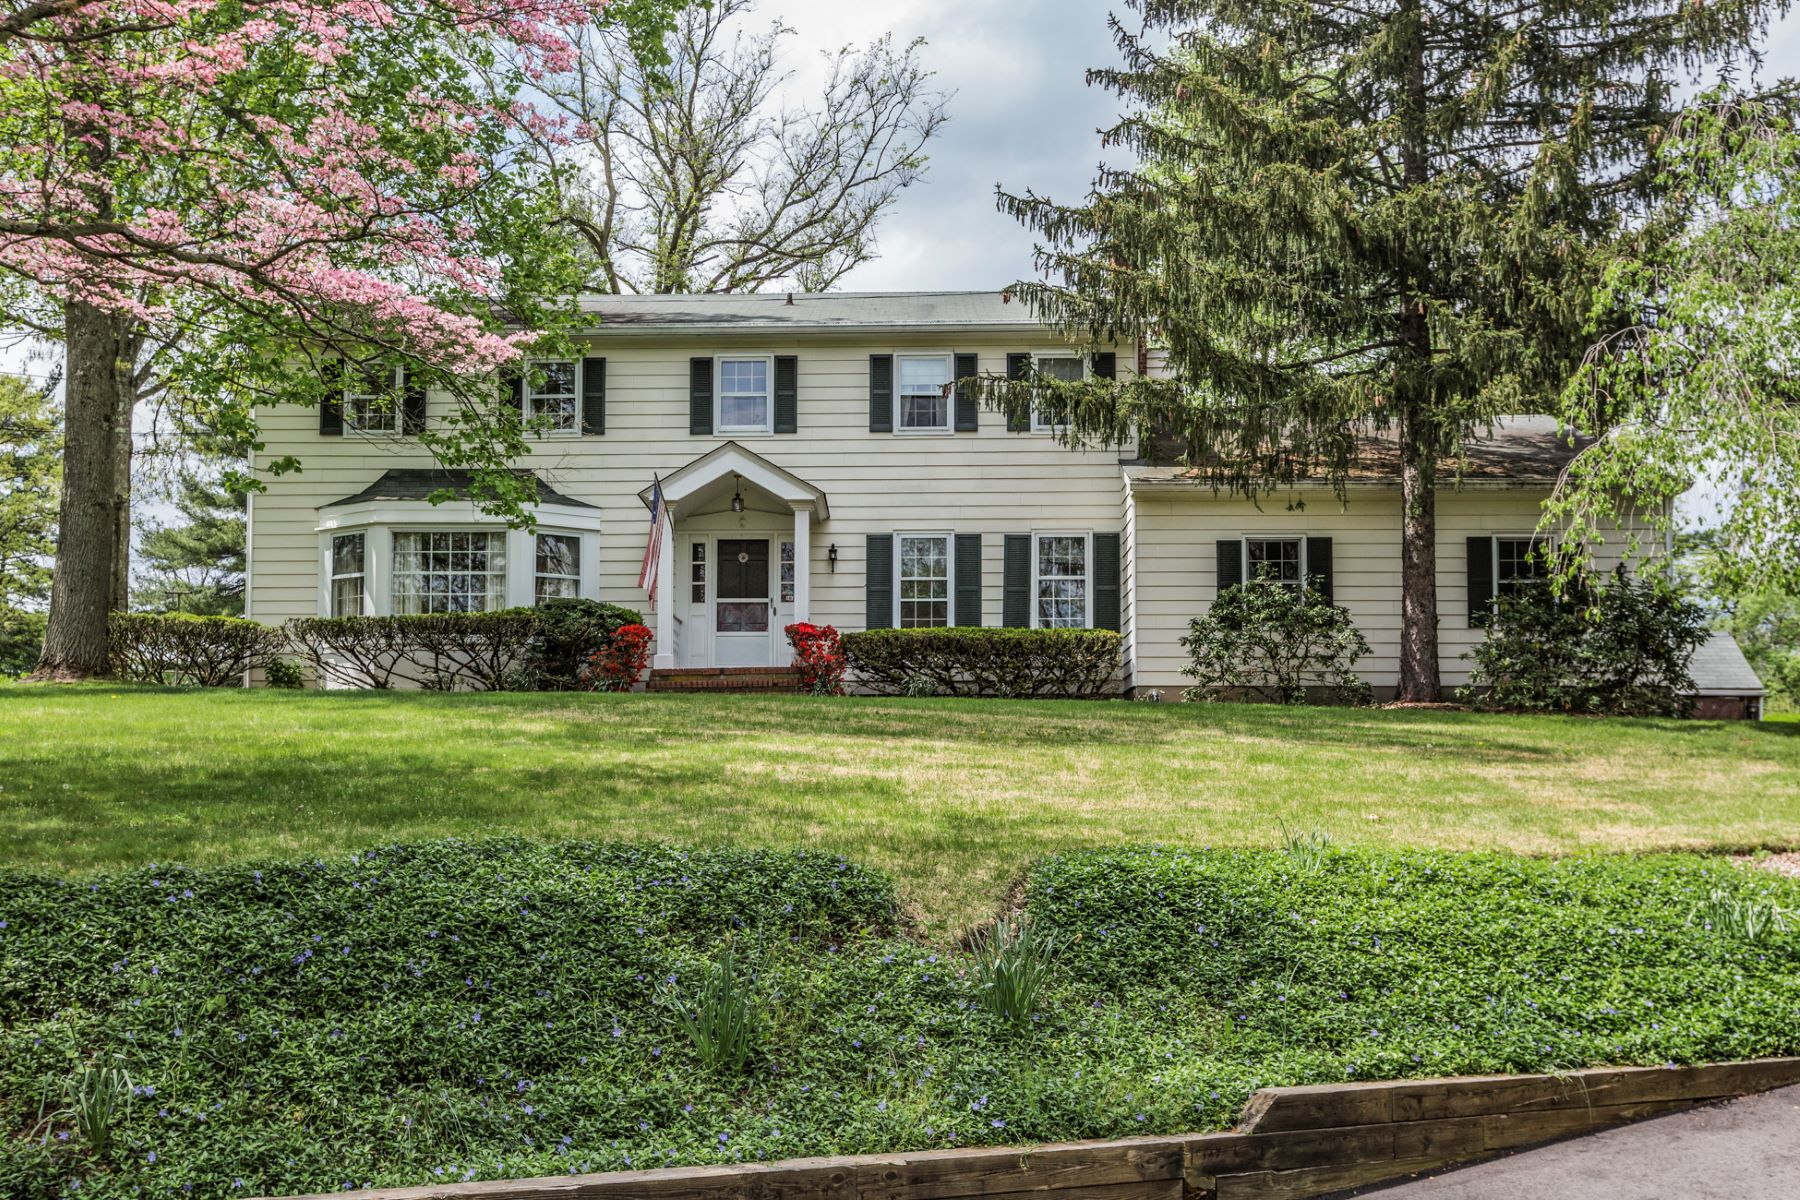 Single Family Home for Sale at A Belle Mead Haven - Montgomery Township 566 River Road Belle Mead, New Jersey, 08502 United States